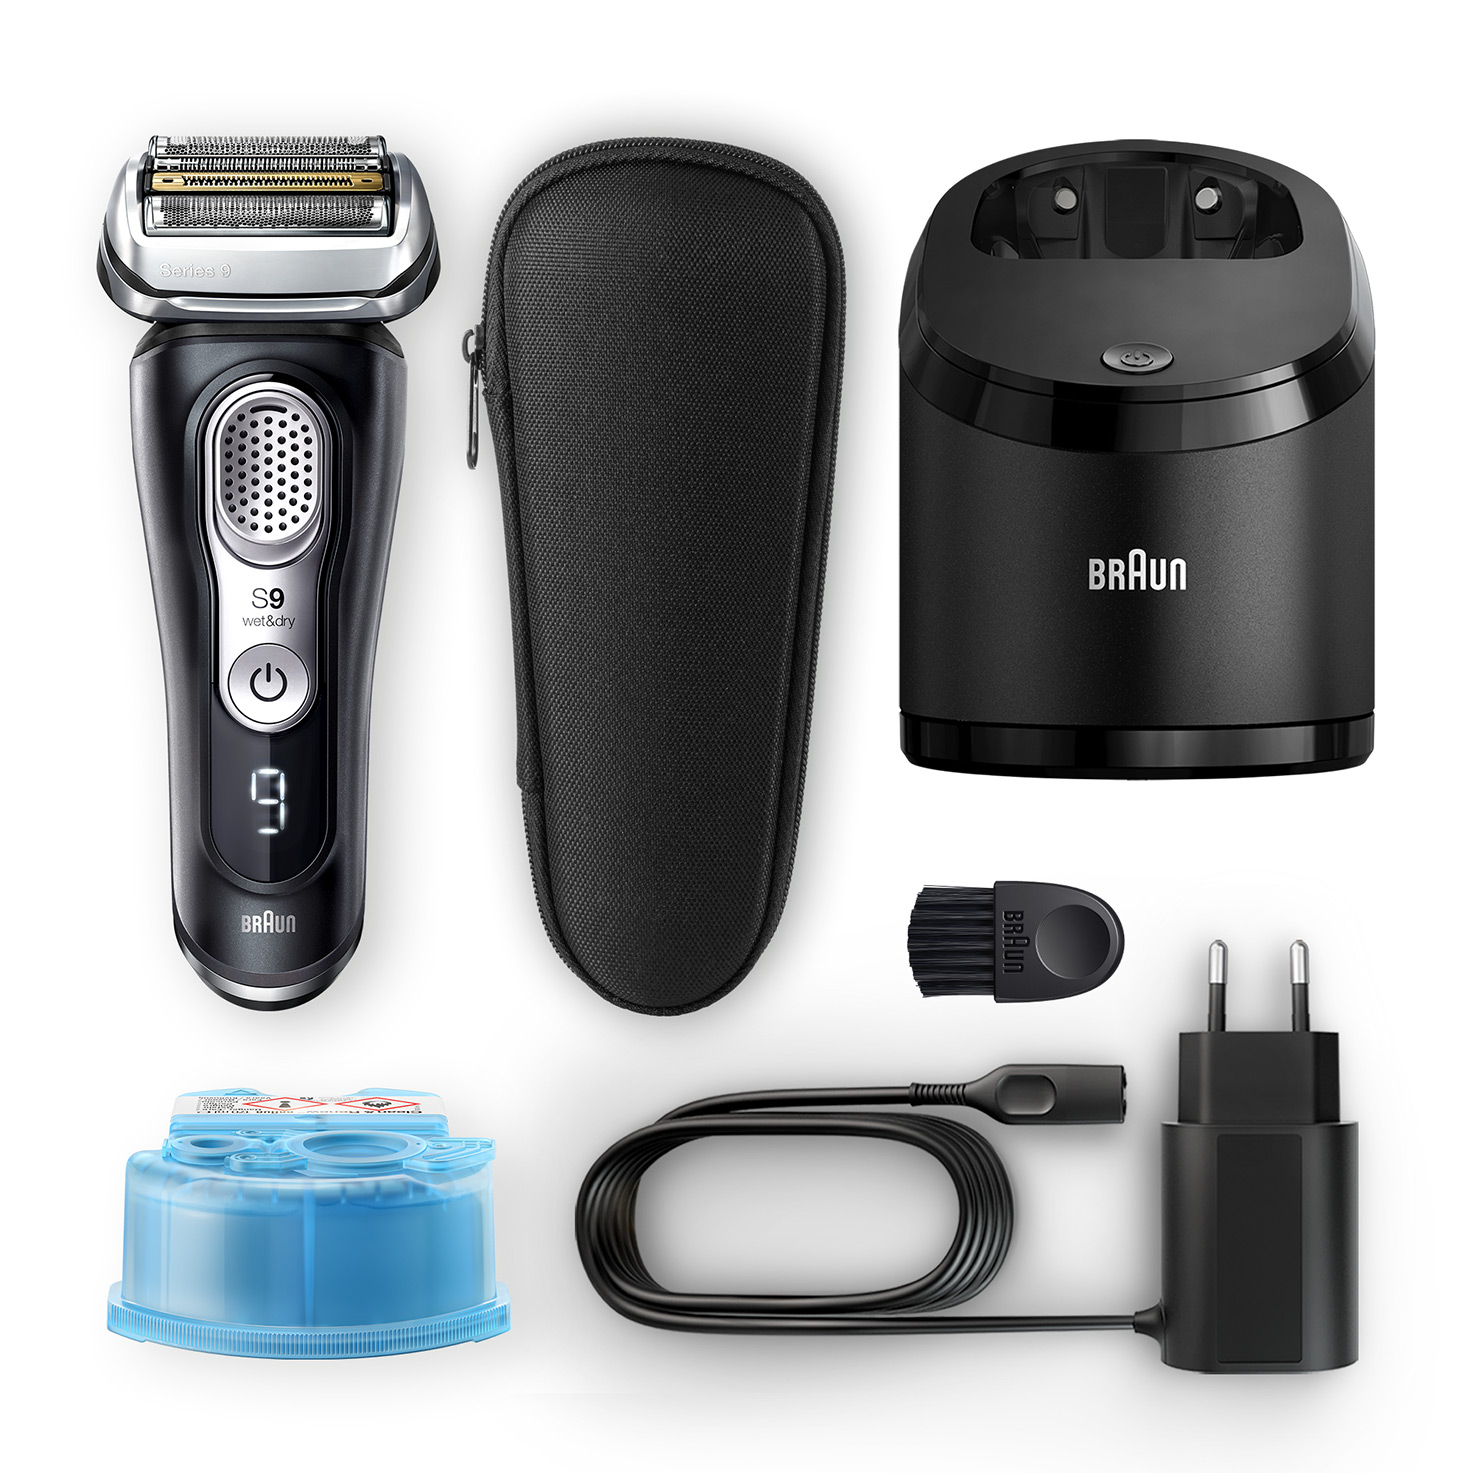 Series 9 9381cc shaver - What´s in the box